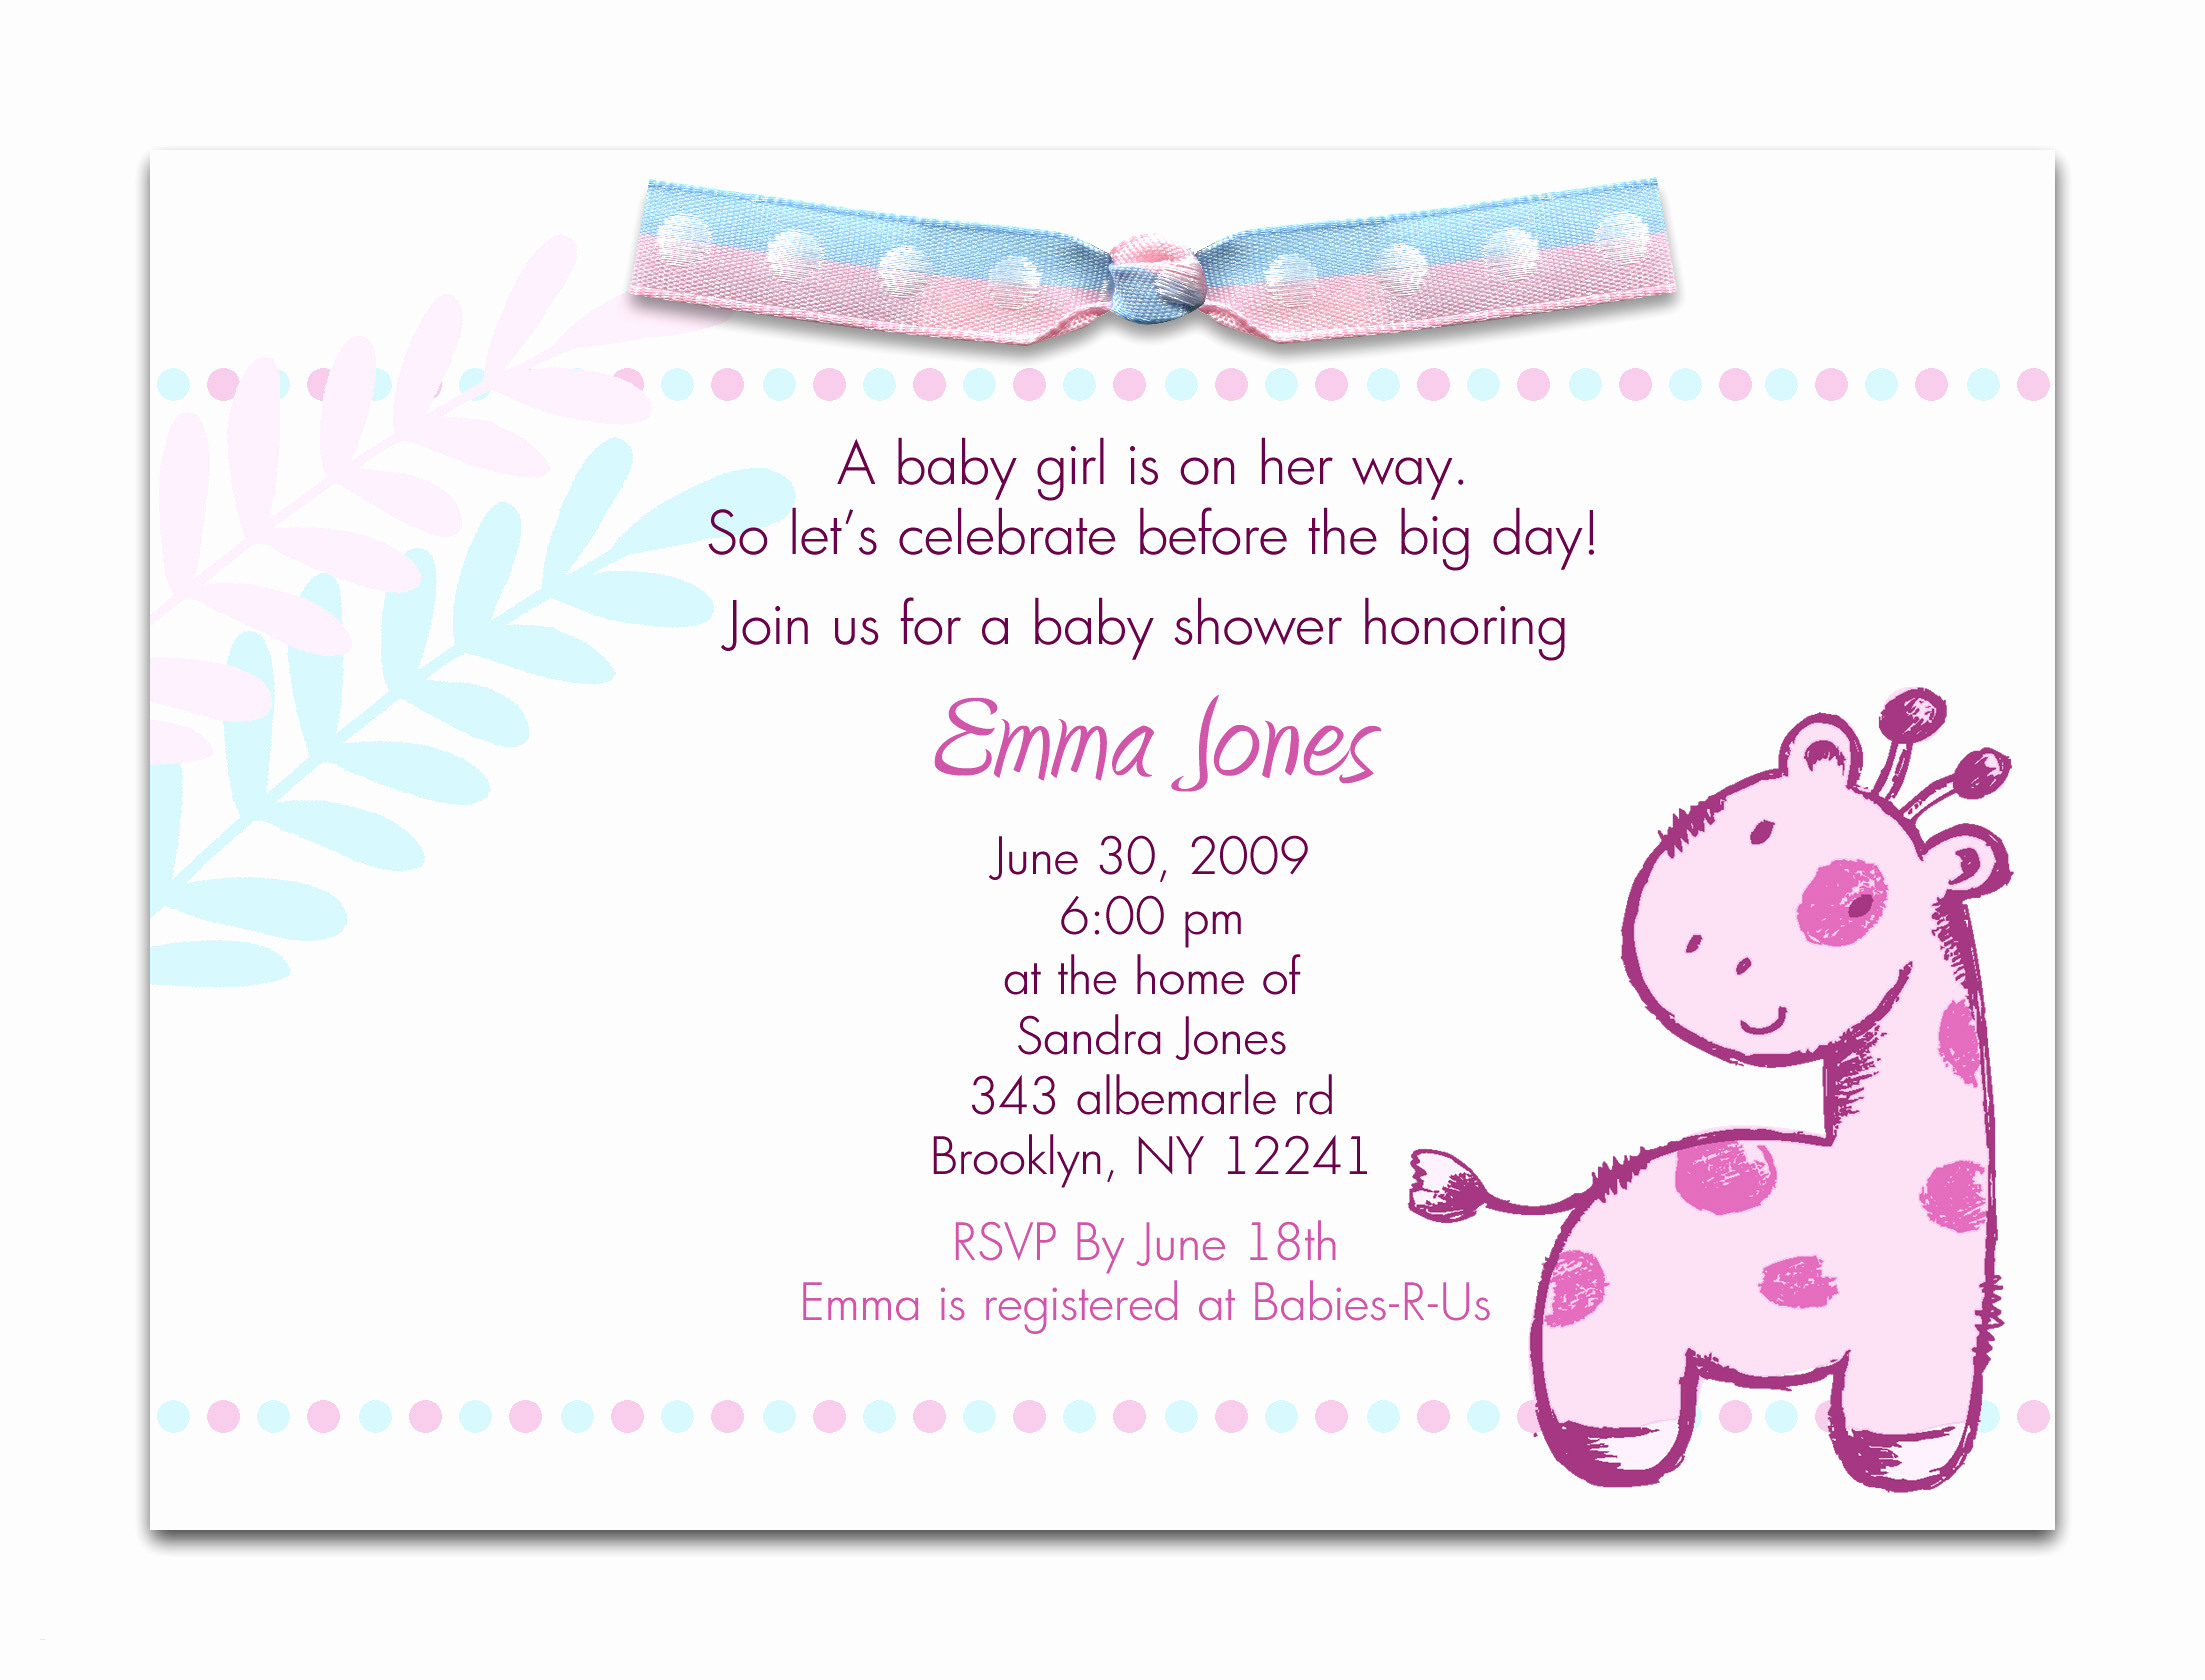 Full Size of Baby Shower:delightful Baby Shower Invitation Wording Picture Designs Baby Shower Invitation Wording As Well As Baby Shower Quotes With Baby Shower Notes Plus Baby Favors Together With Arreglos Baby Shower Niño